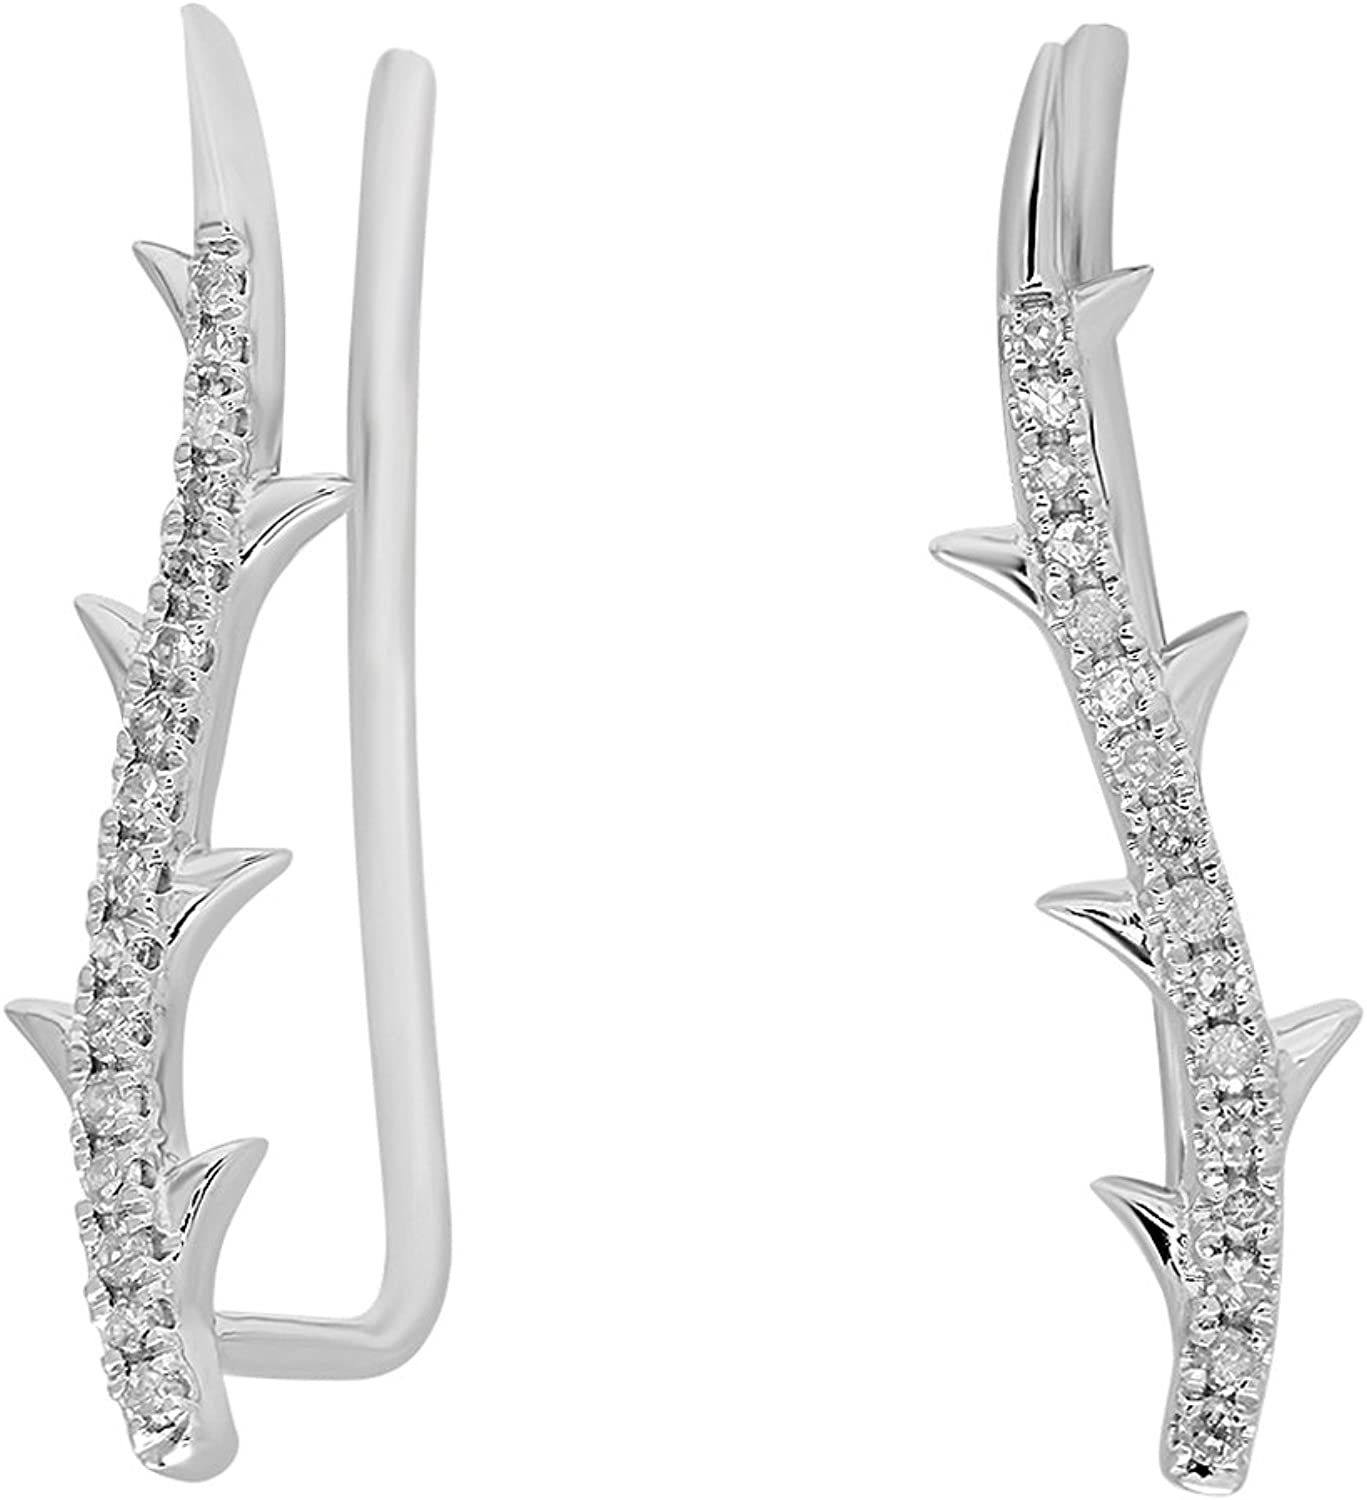 0.15 Carat (ctw) 10K White gold Round Cut White Diamond Ladies leaf shaped Climber Earrings